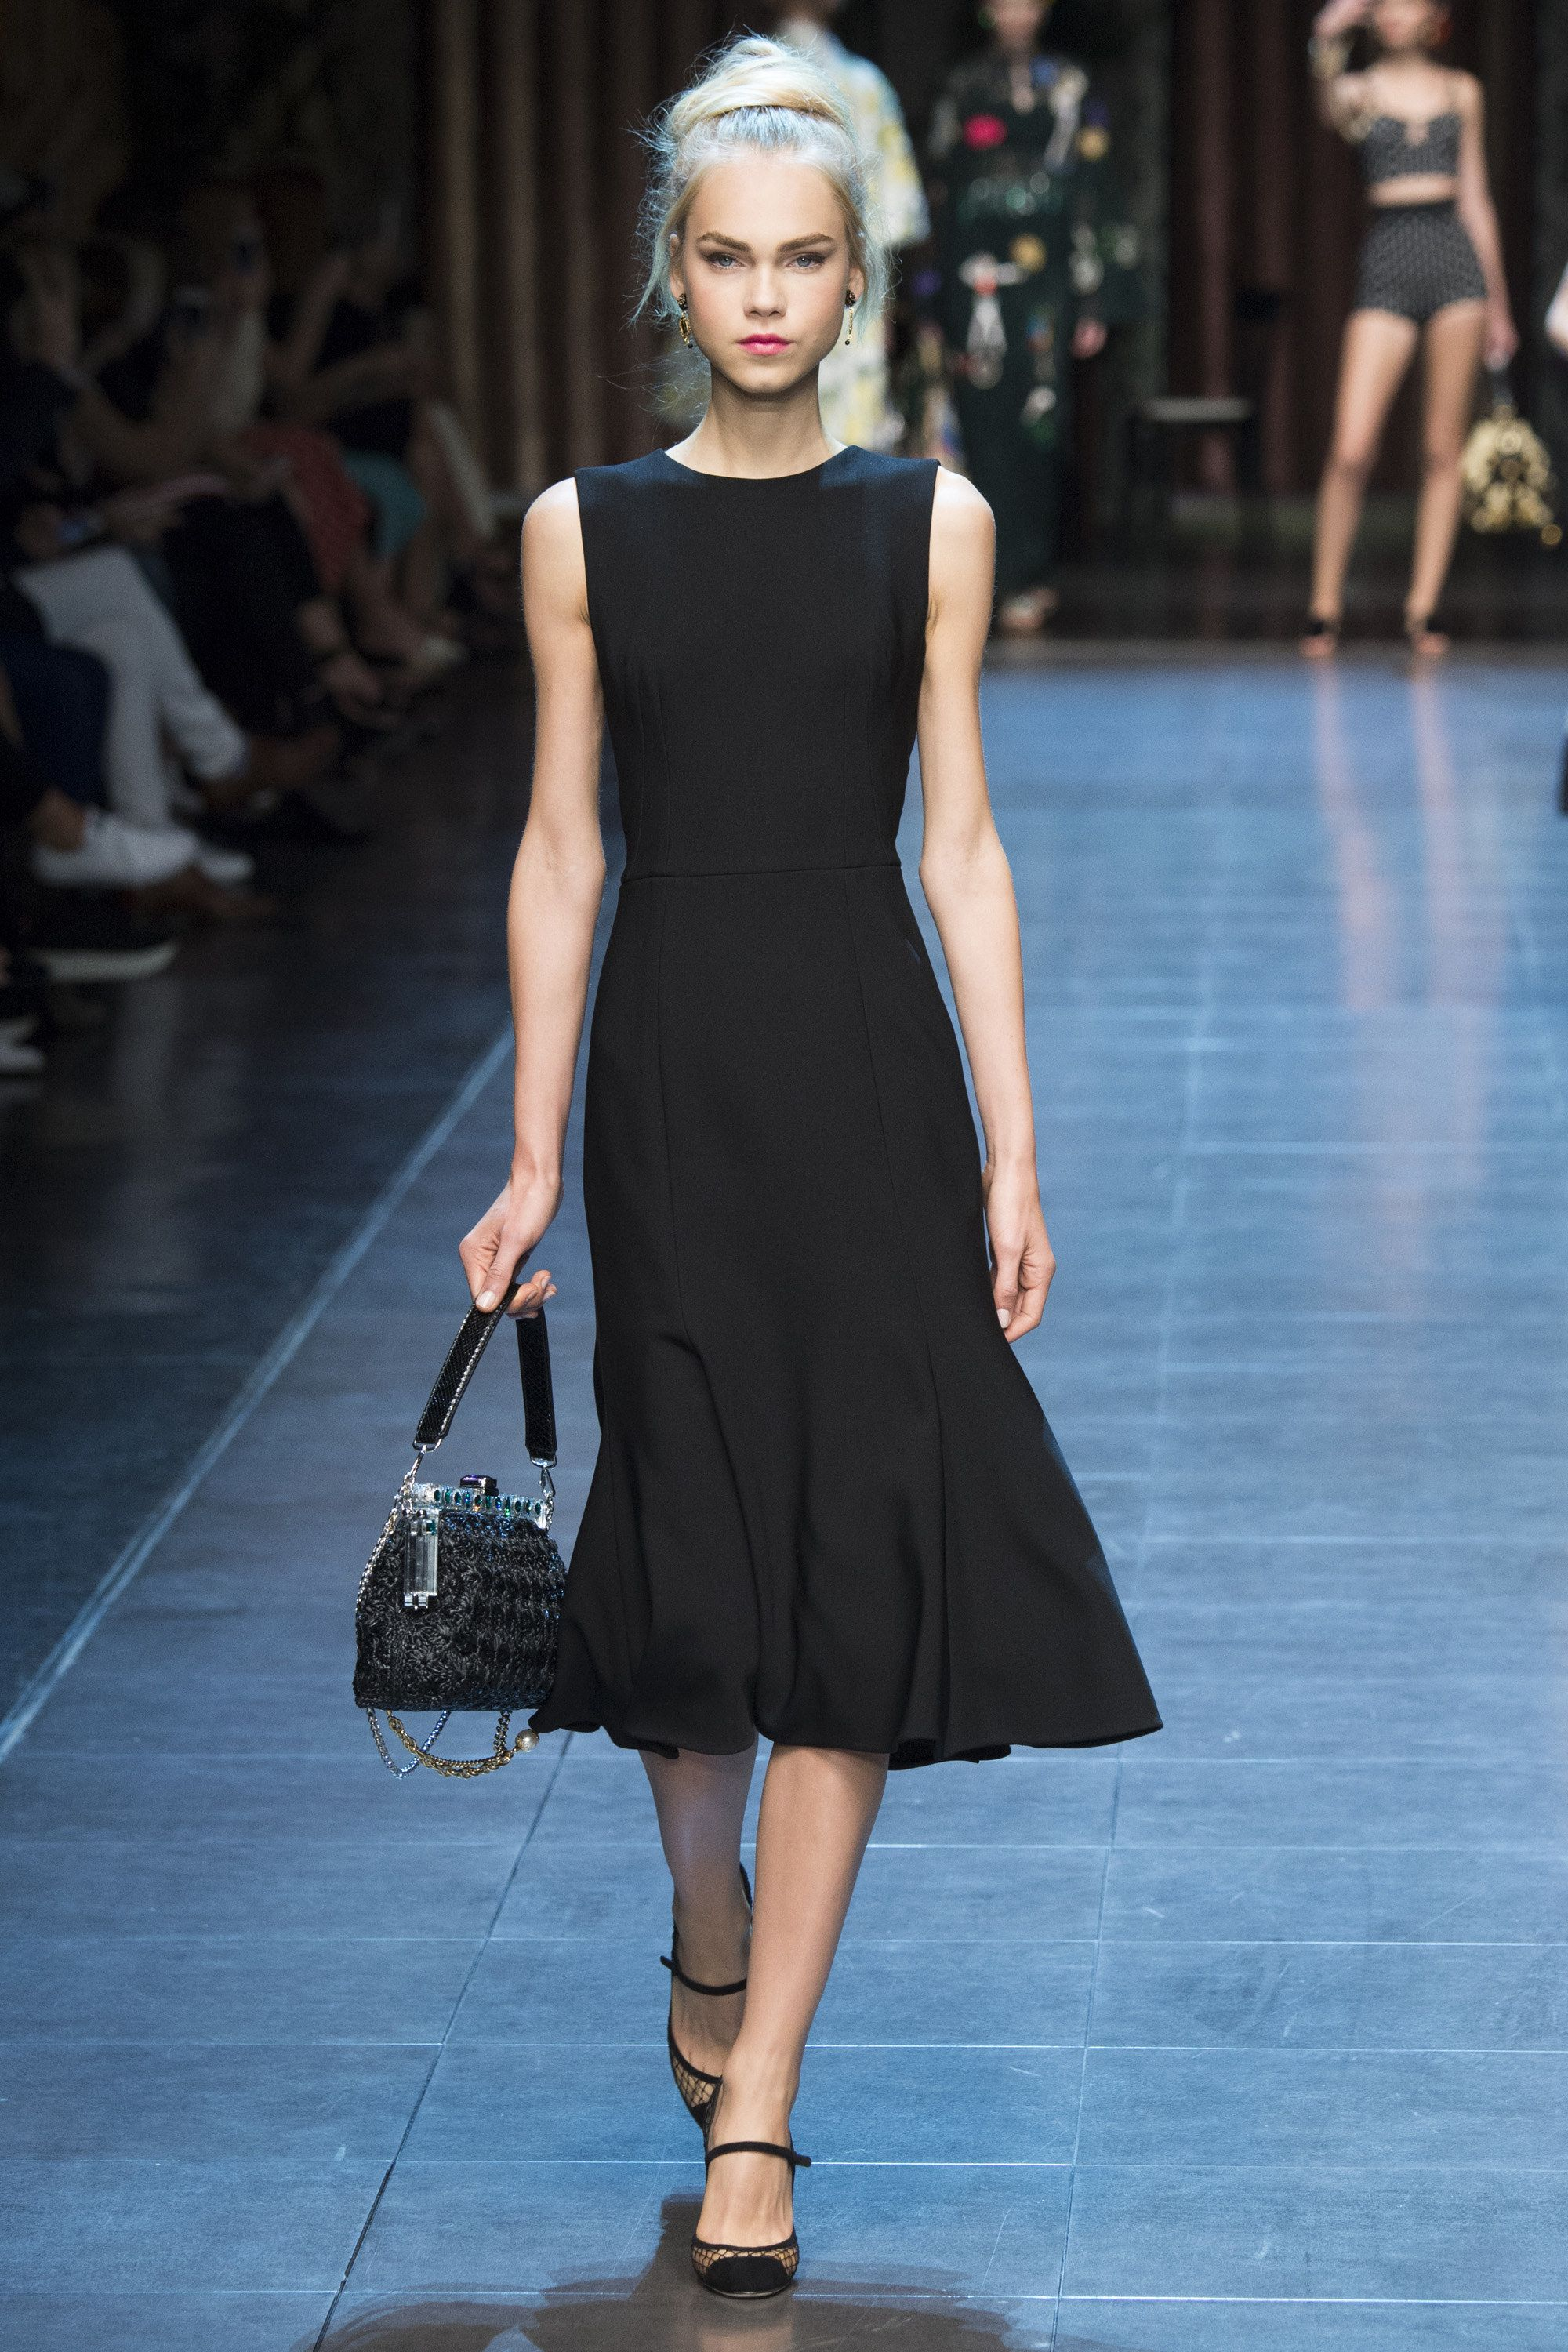 ff094af4910 Sleek and Chic Black Sleeveless Dress by Dolce  amp  Gabbana Spring 2016  Ready-to